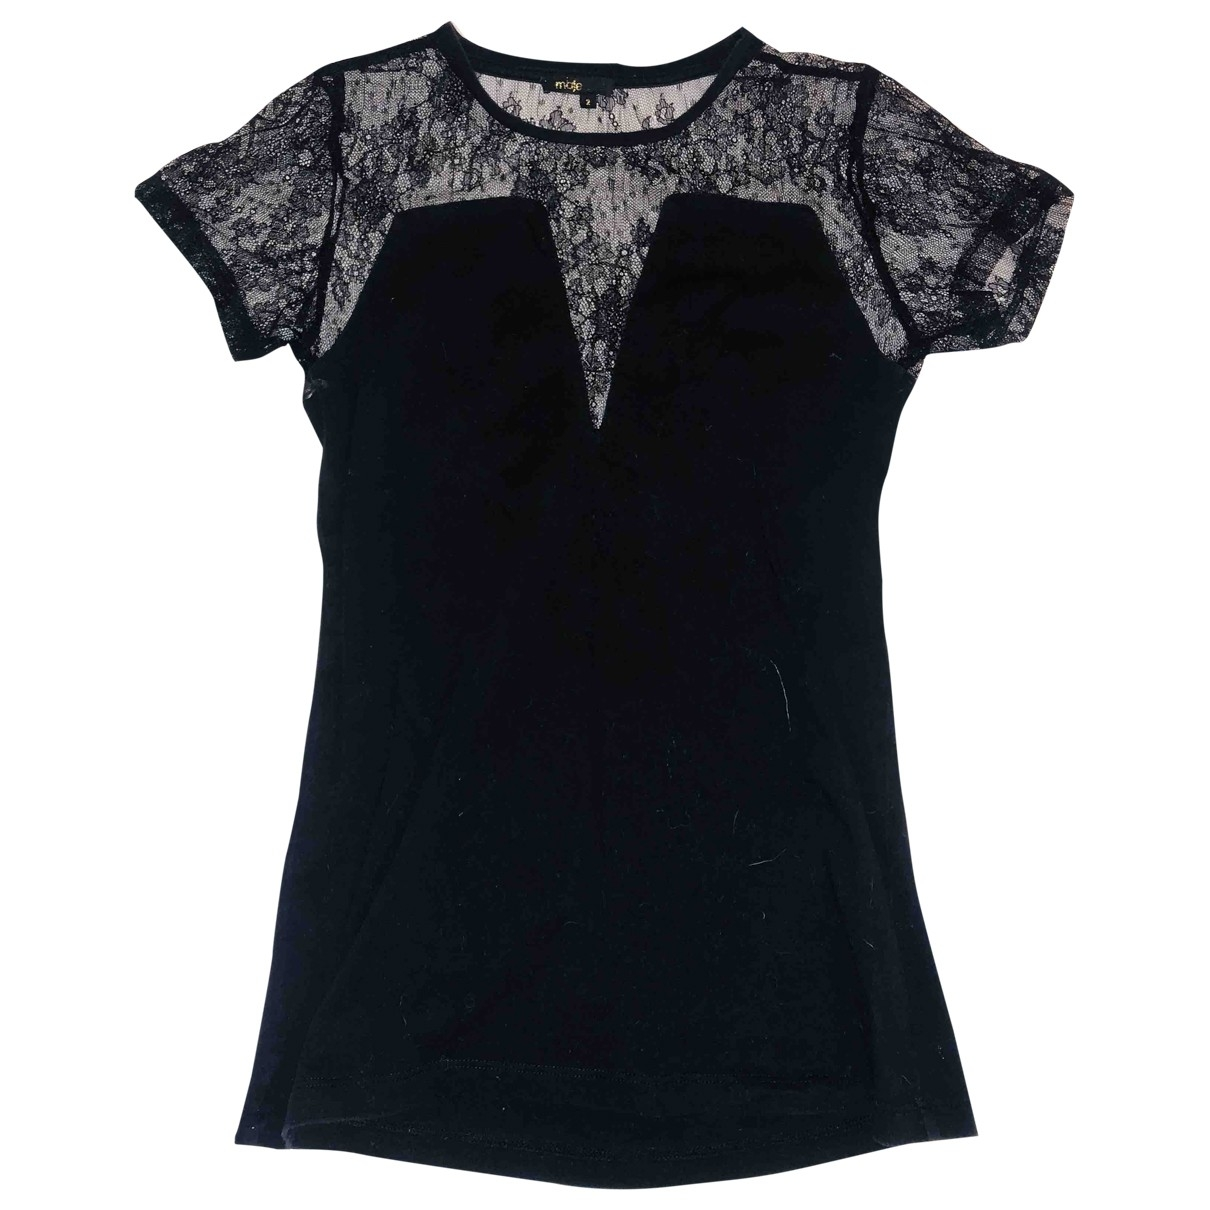 Maje \N Black Lace  top for Women 10 UK